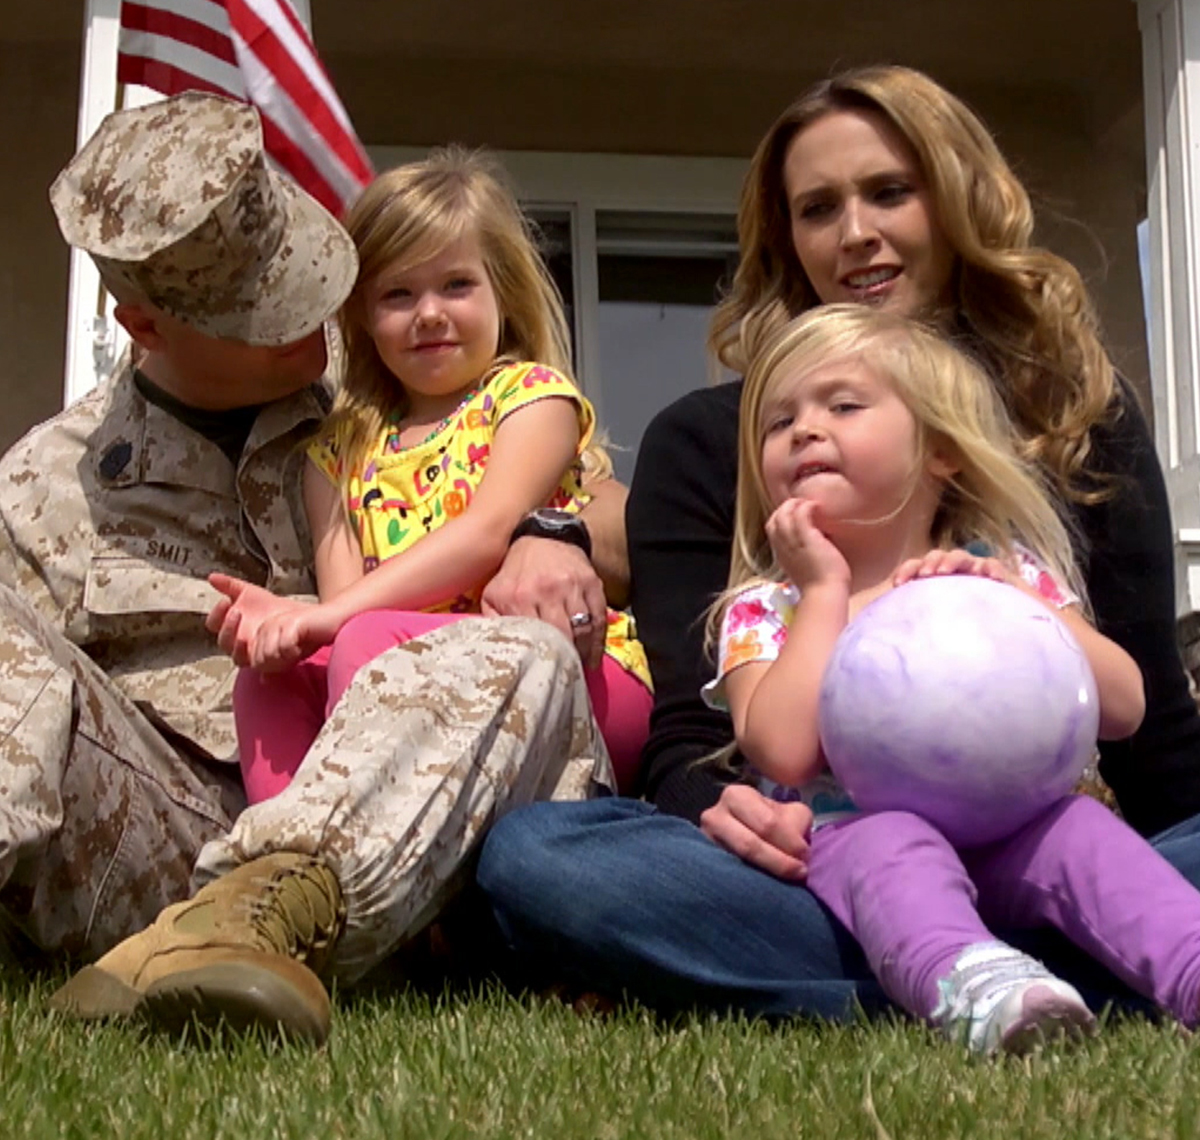 Long form video of the amenities available to Marines and their families on a Marine Corps base.